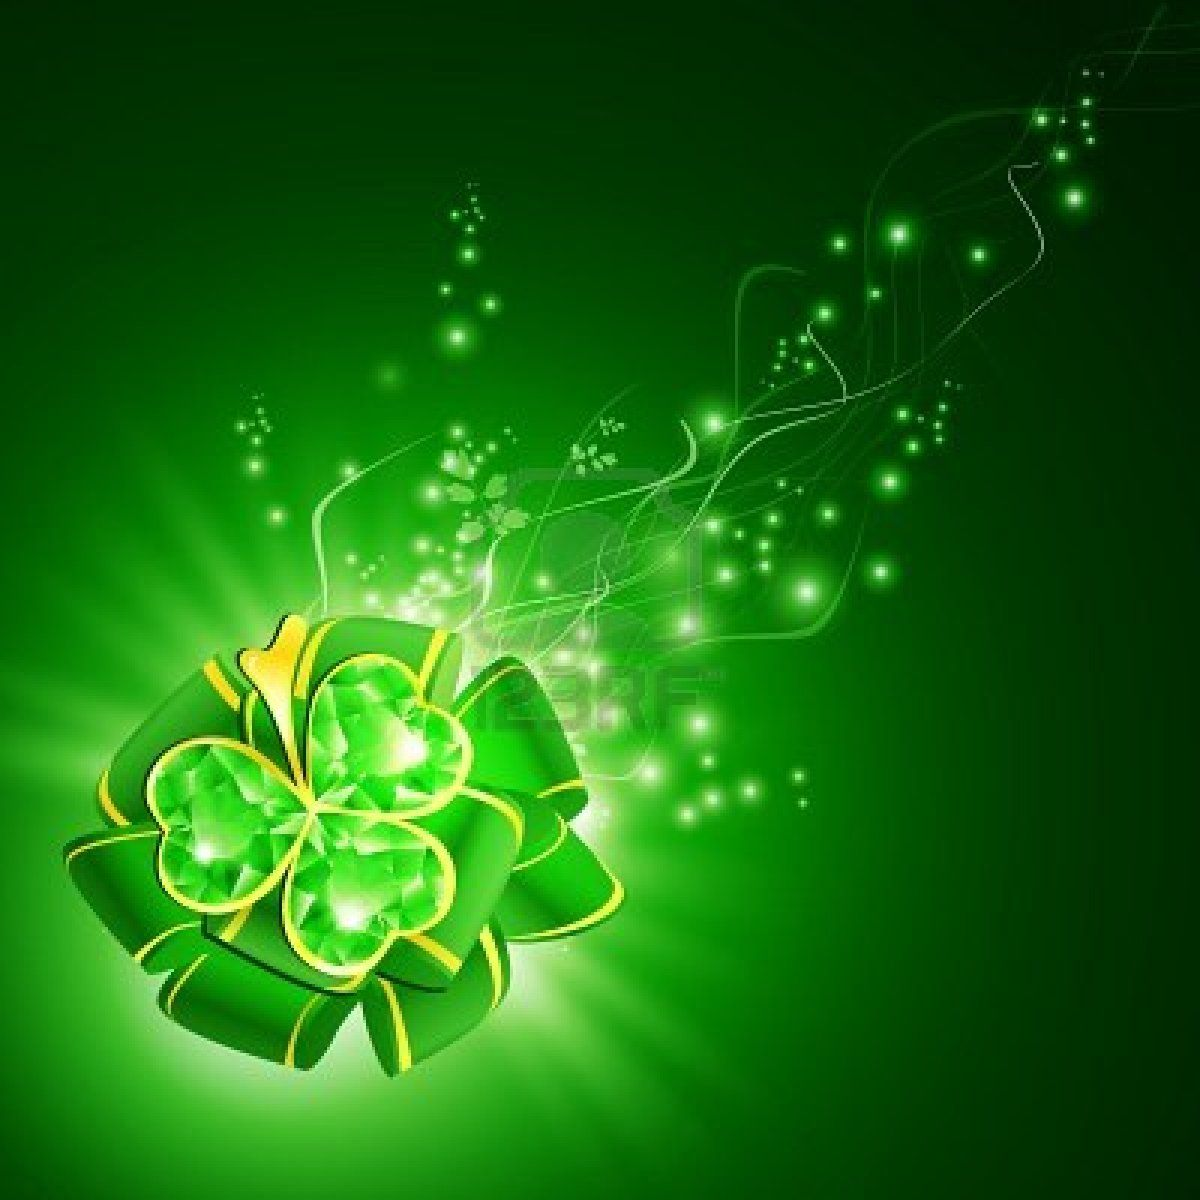 Emerald Shamrock Lucky Signs Amp Symbols Pinterest